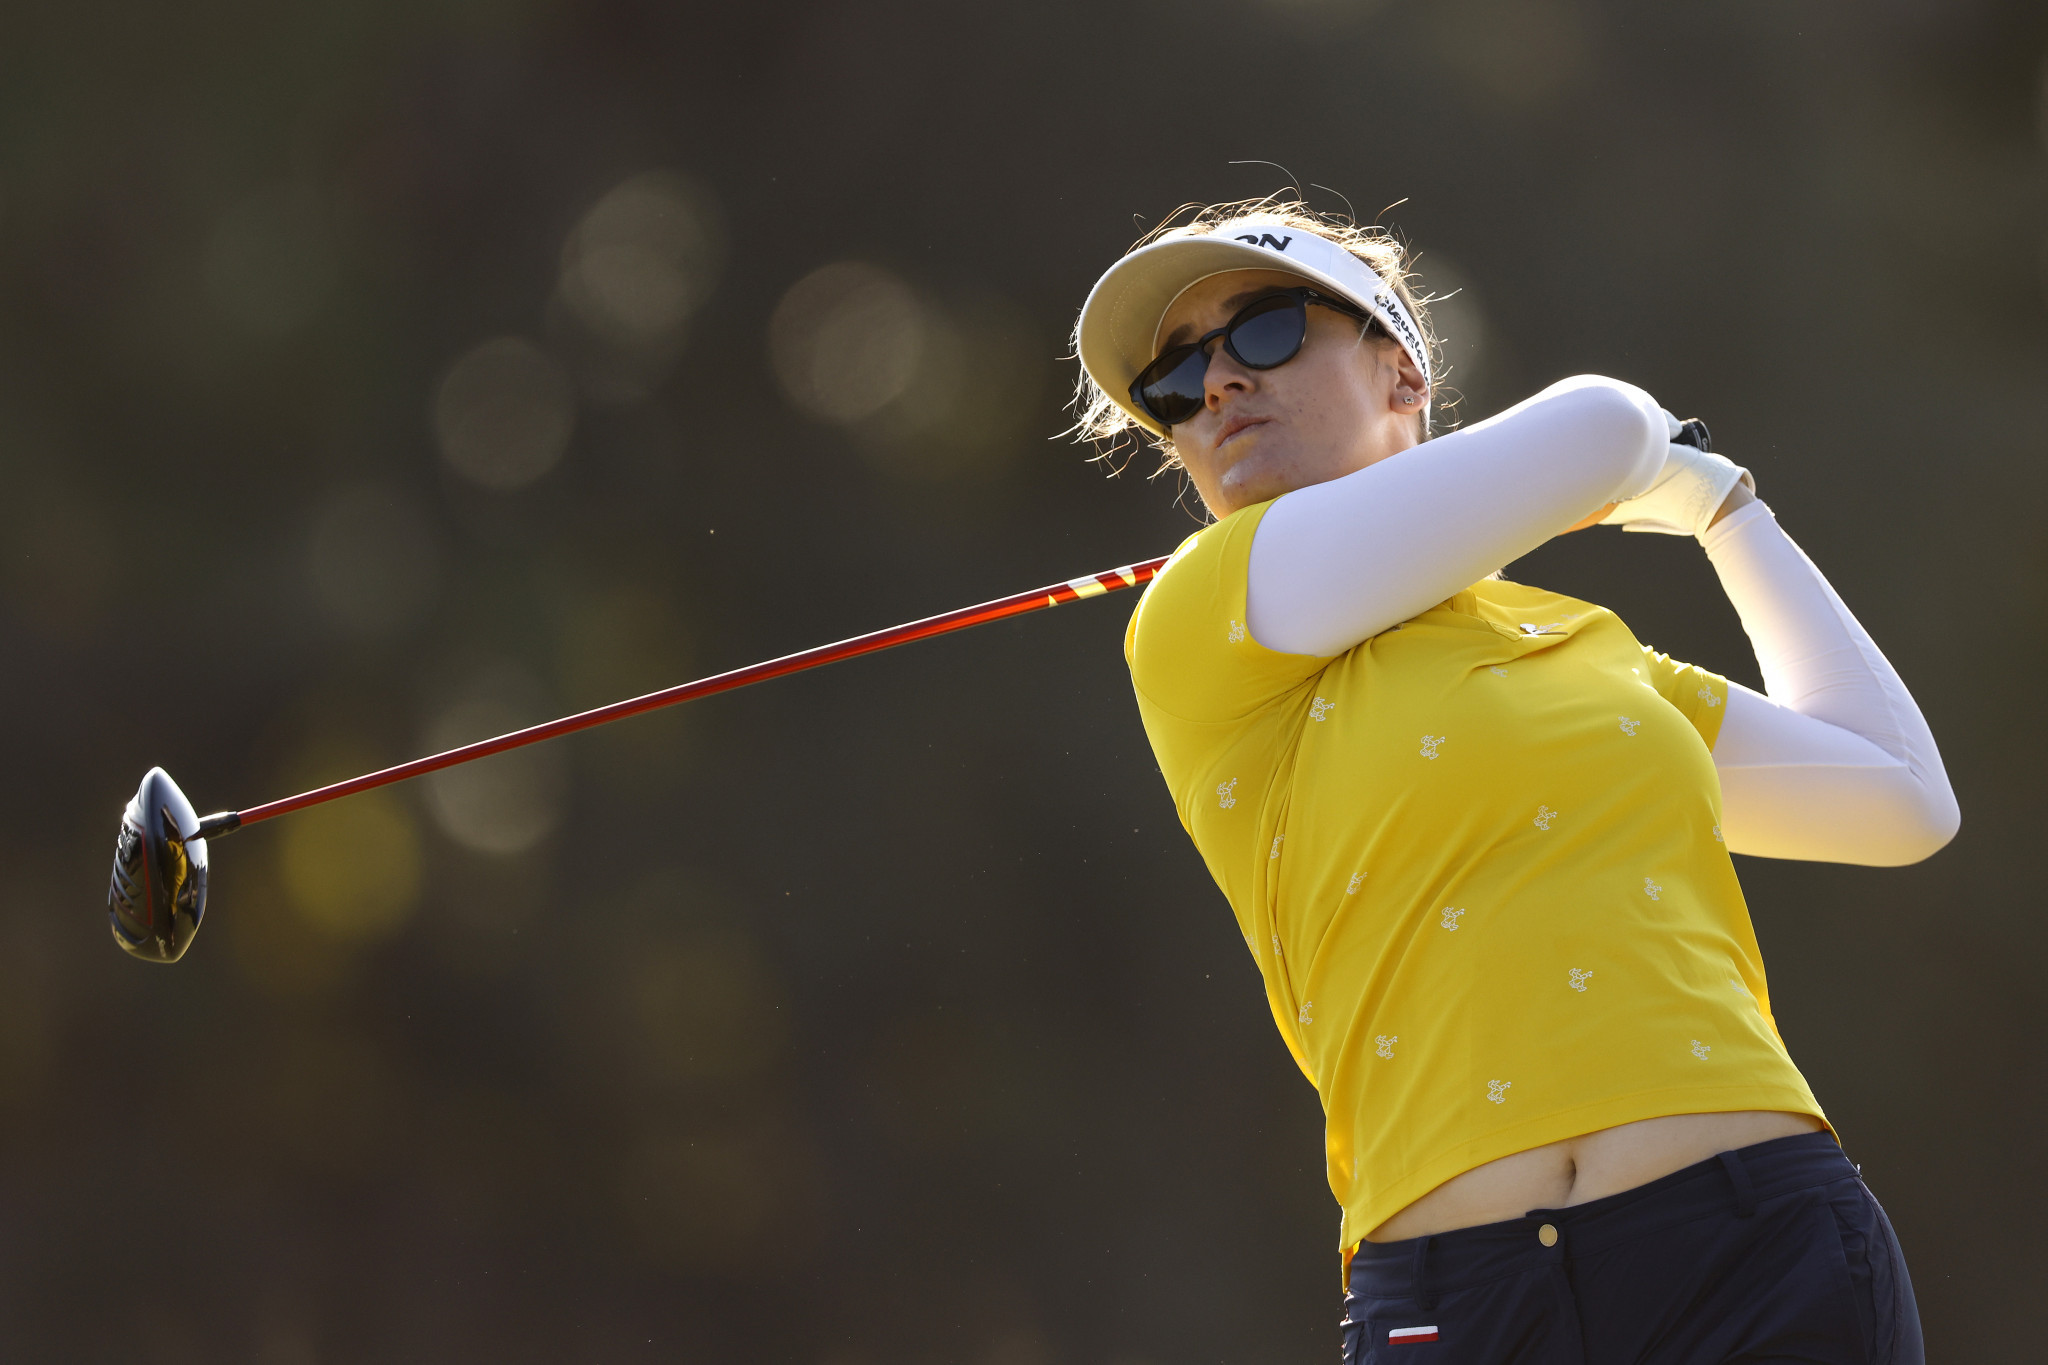 Australia's Hannah Green finished in a tie for second at the LPGA Tour's season ending event in Florida after carding a five-under-par round of 67 on the final day ©Getty Images